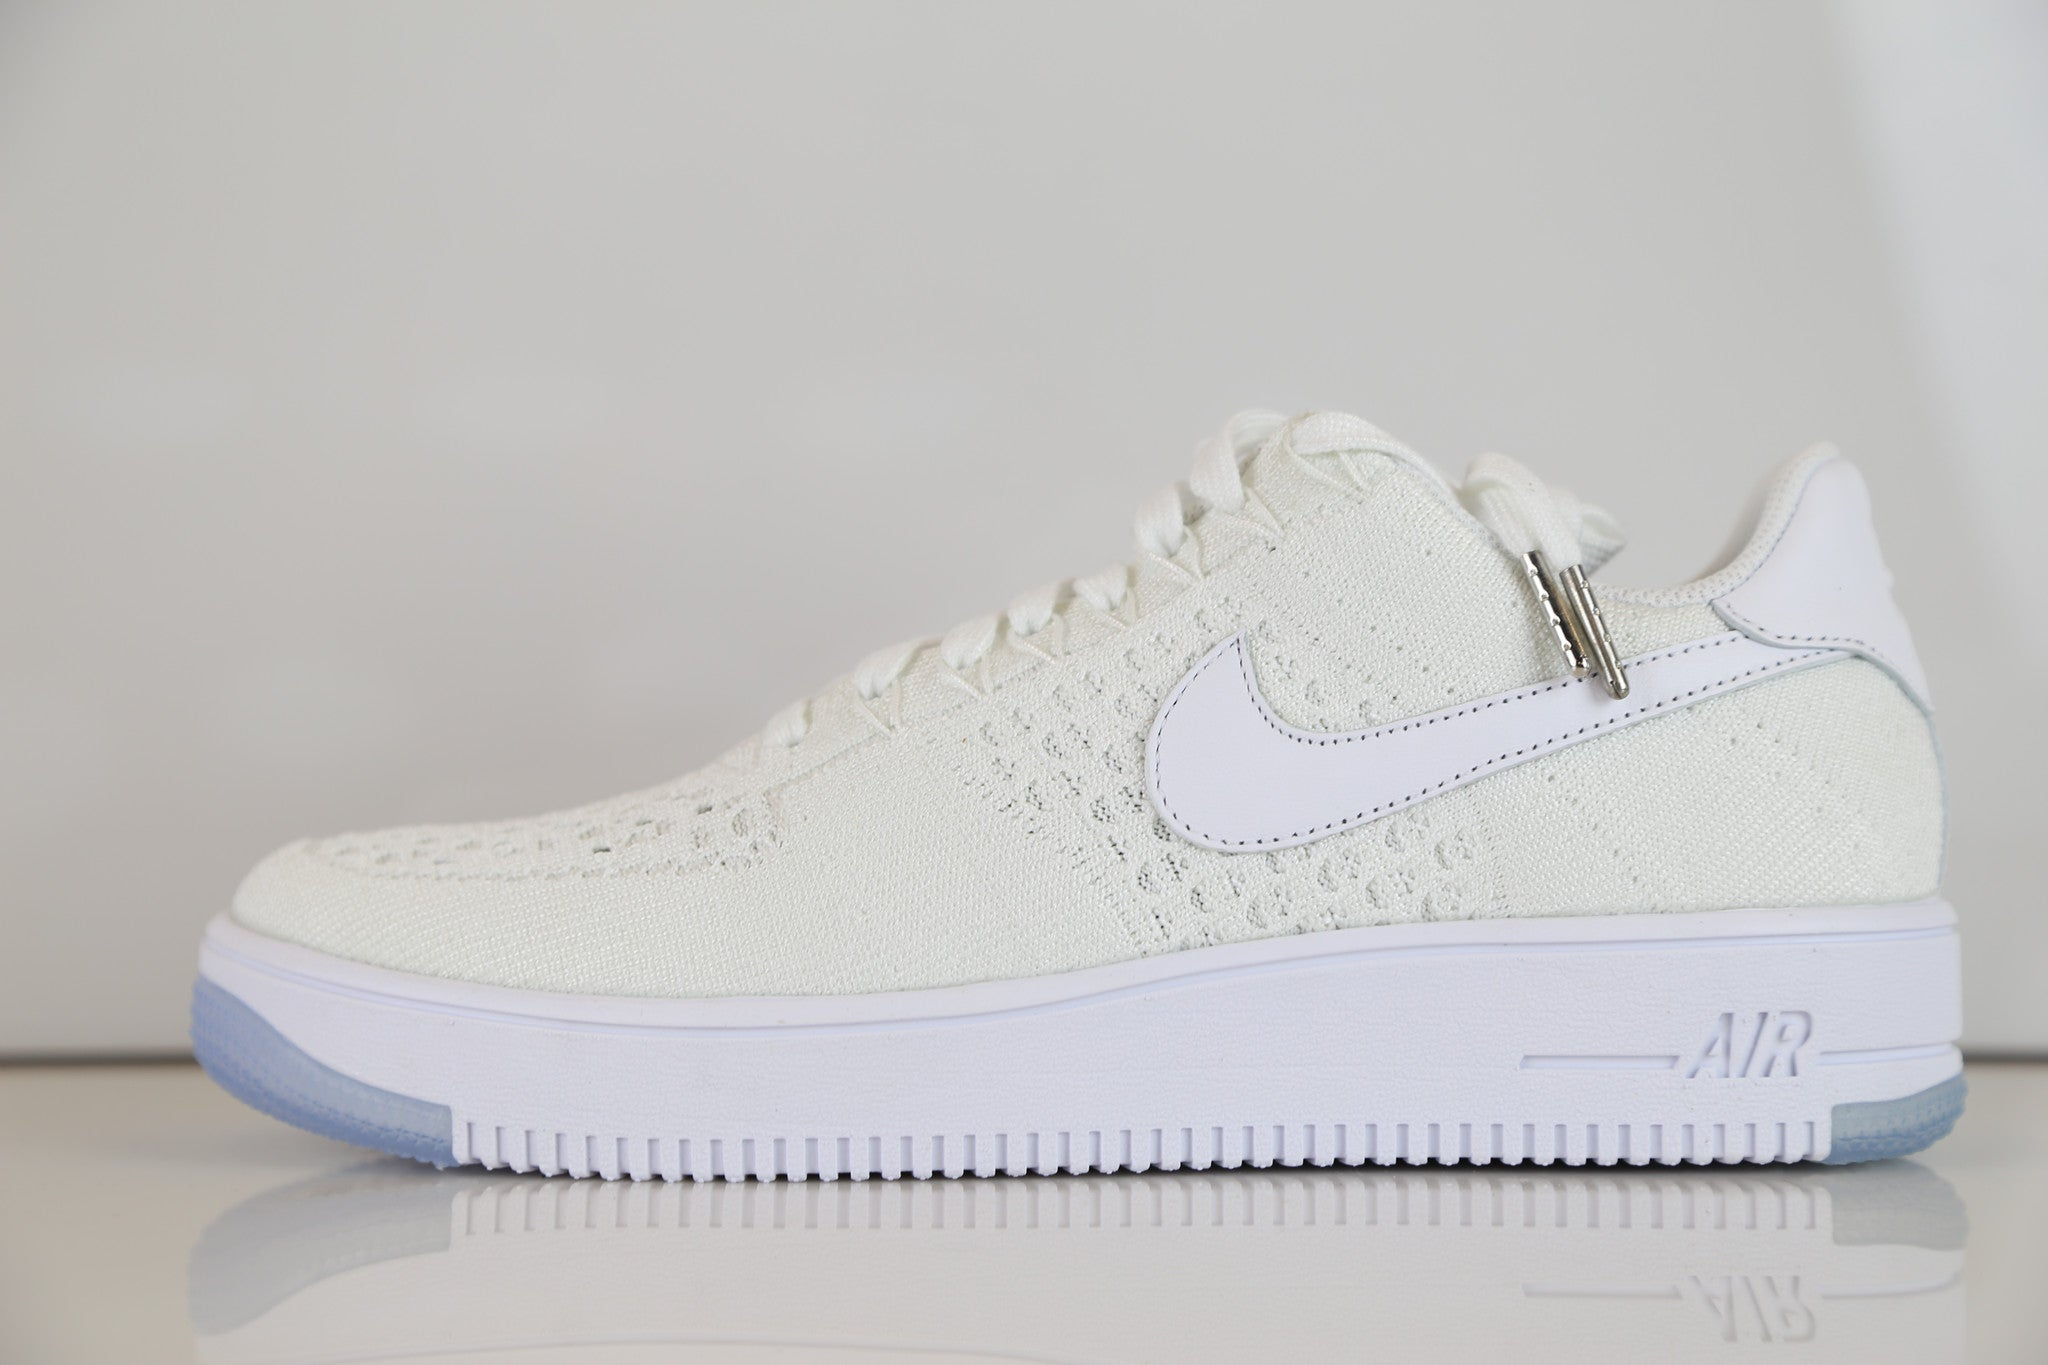 1bfe38a5b3 Nike AF1 Ultra Flyknit Low Air Force White 817419-100 | Zadehkicks